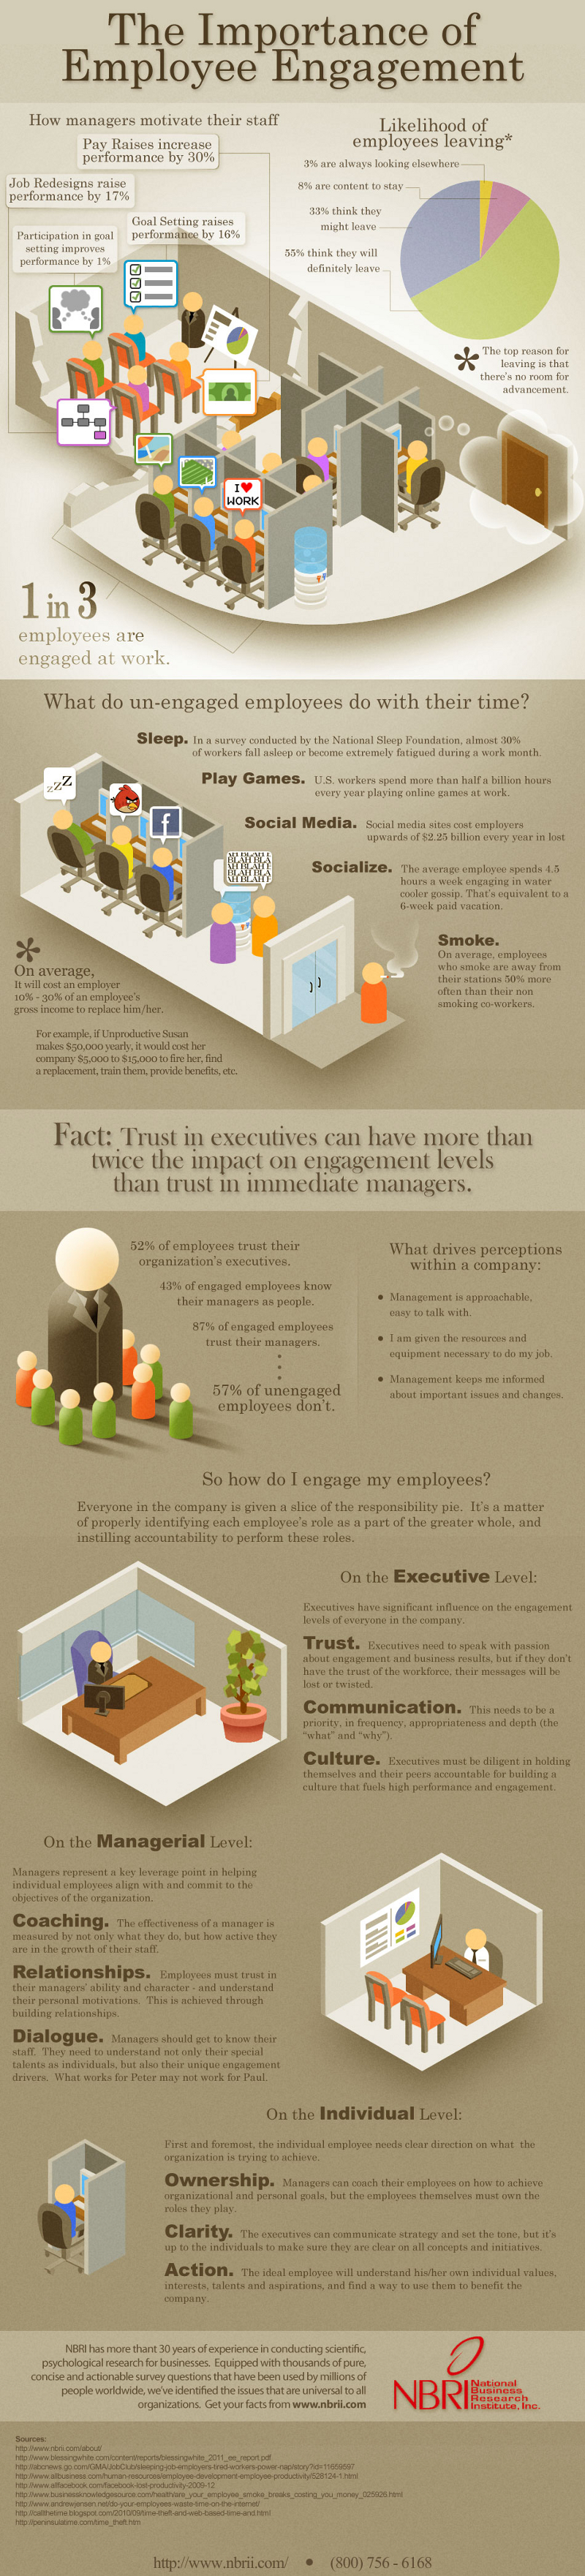 Best Ways to Motivate Staff: Tips, Techniques and Strategies